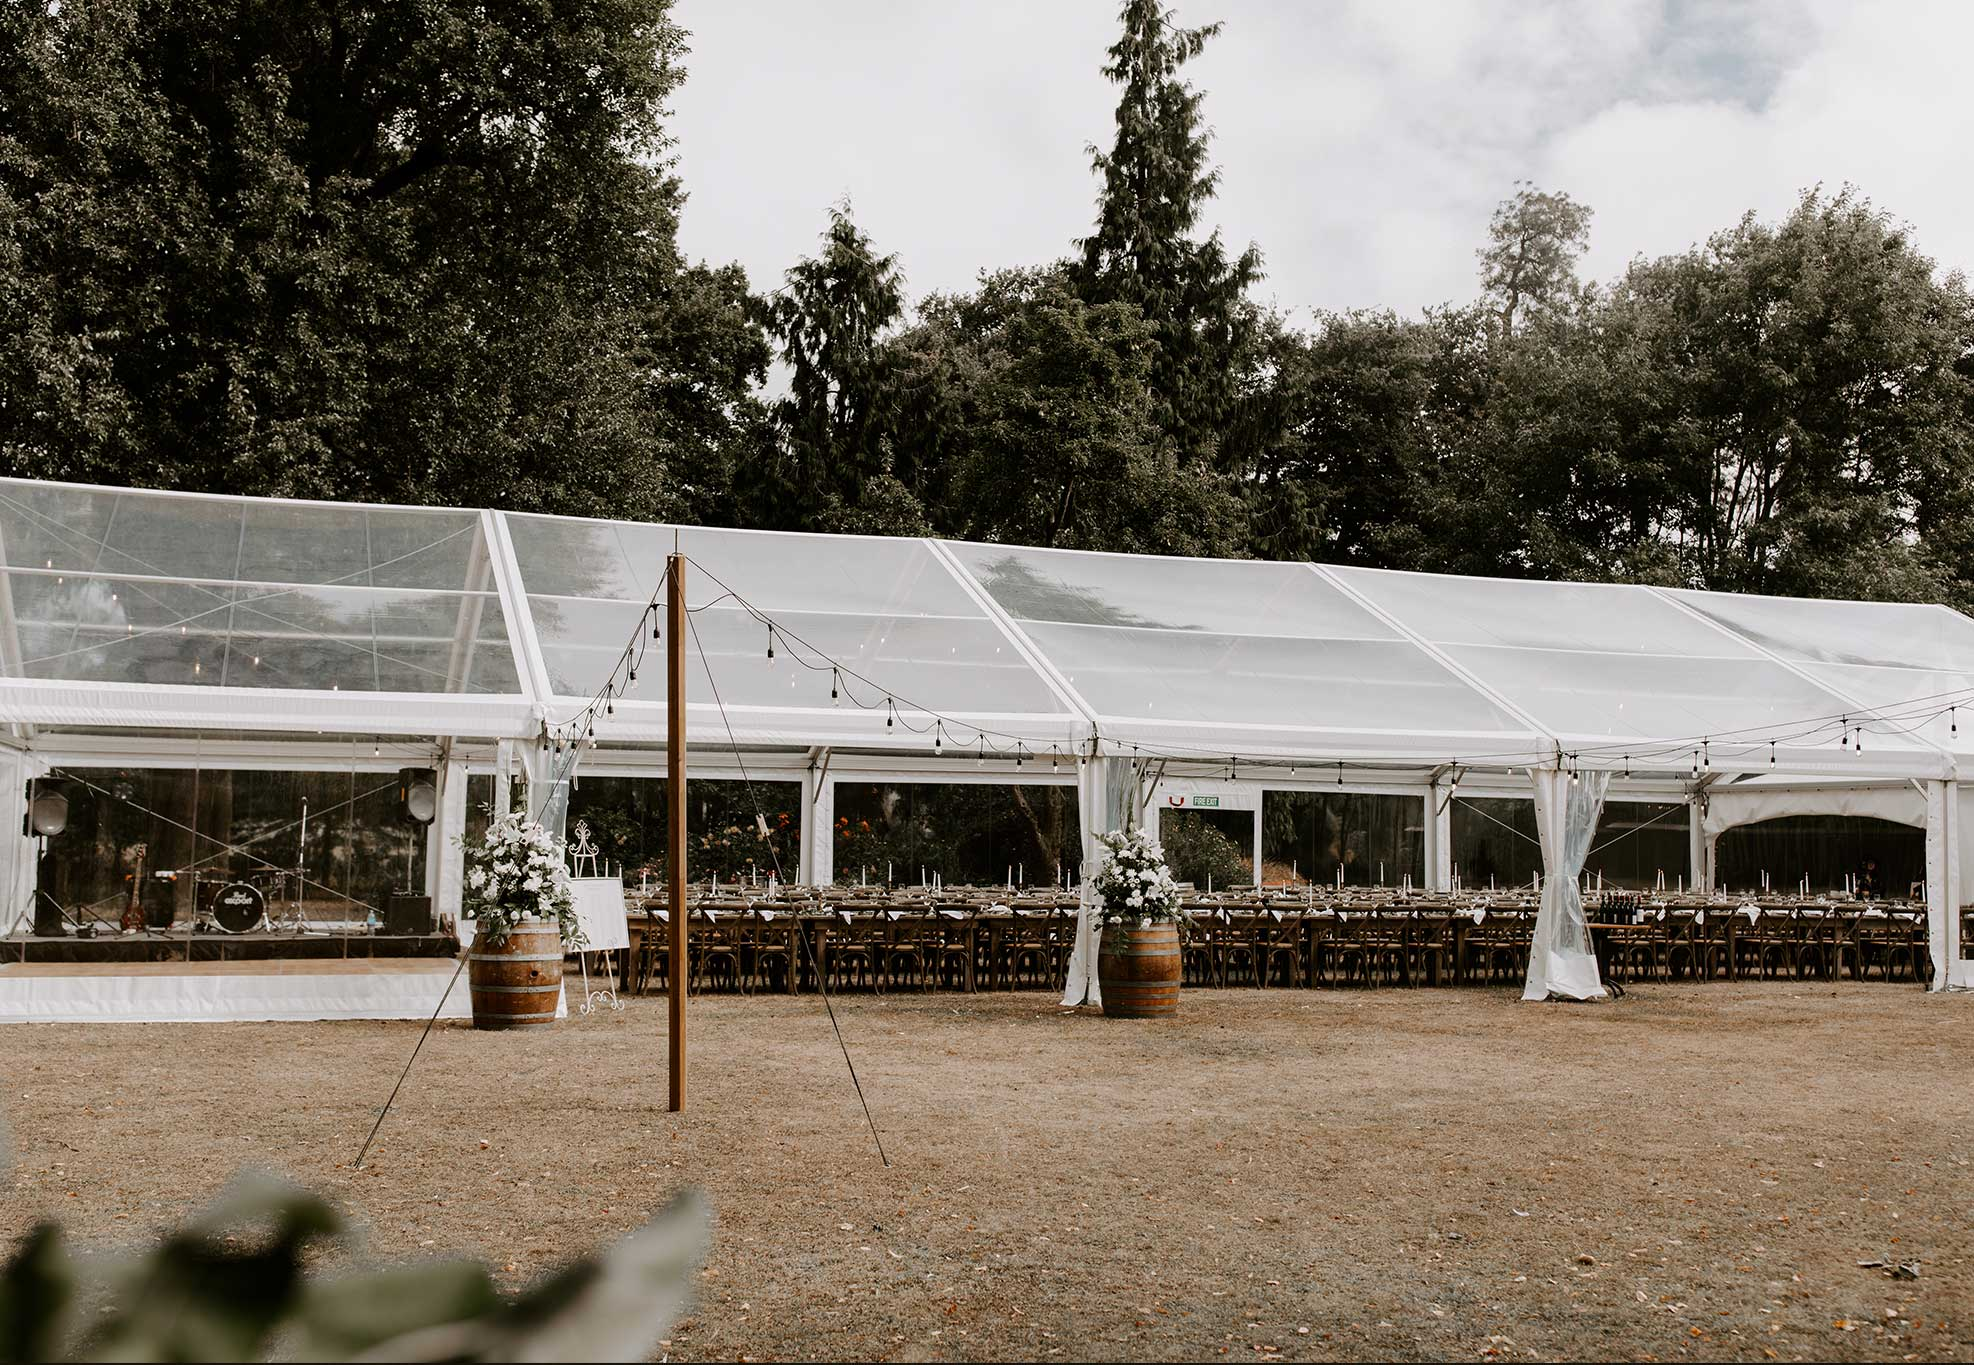 silk-estate-marquee-weddings-and-events-styling-and-hire-lightting-festoon-5